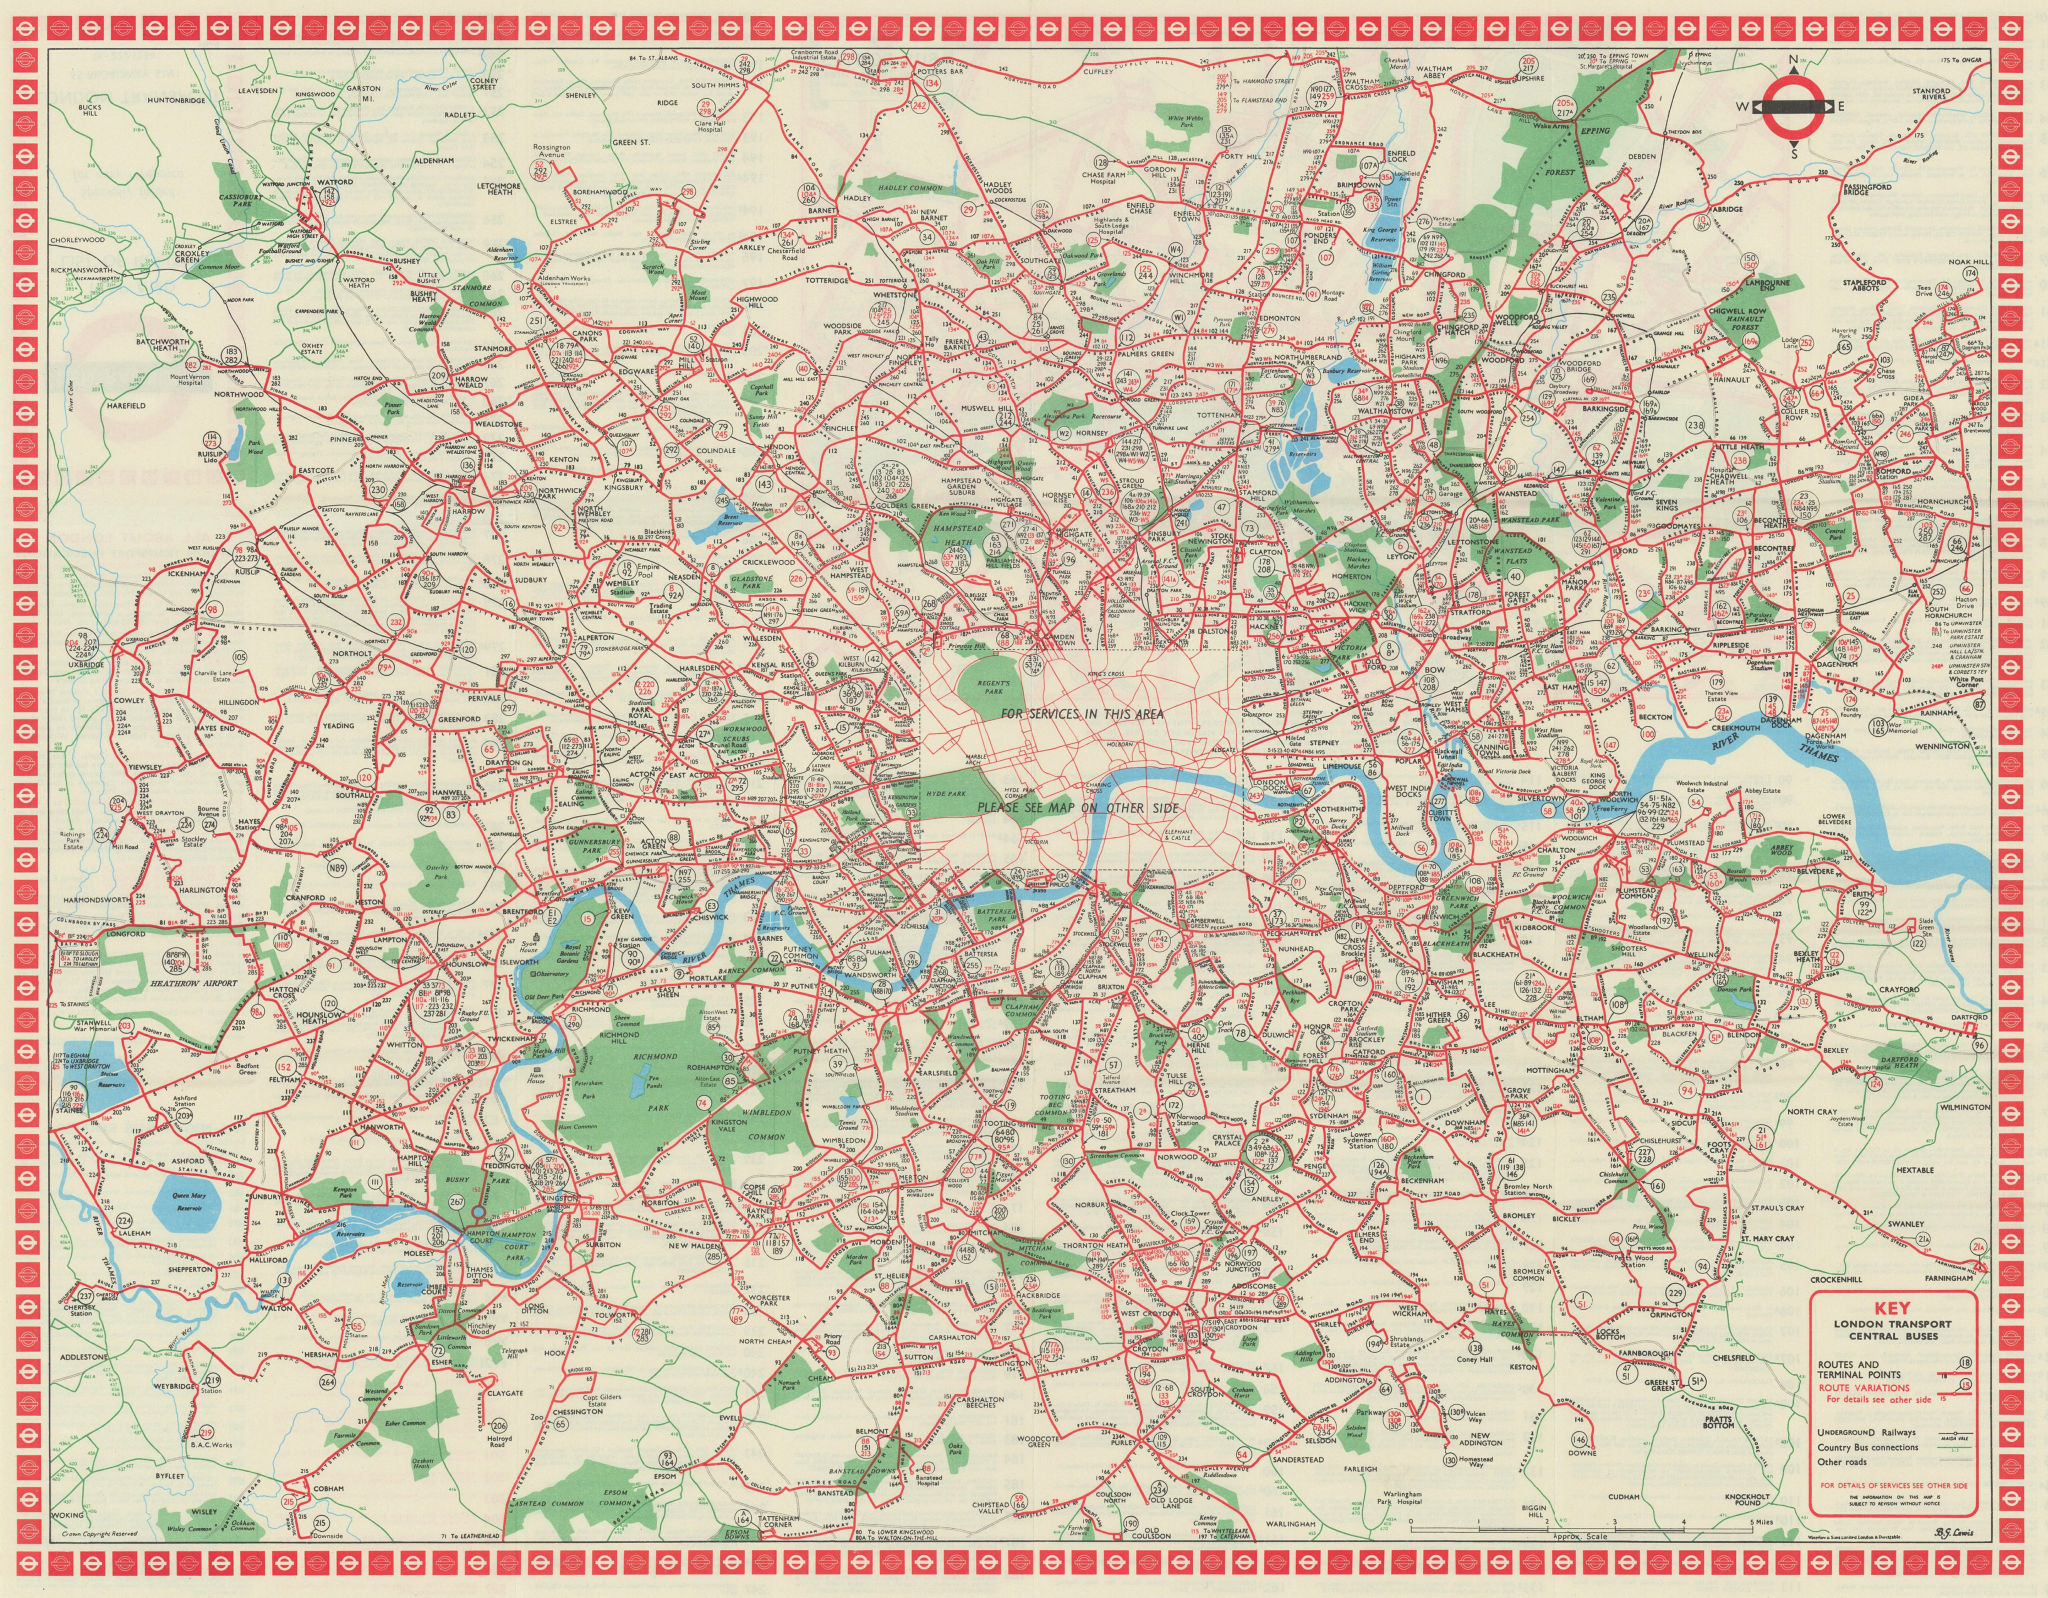 London Transport Central Buses map and list of routes. LEWIS #2 1969 old